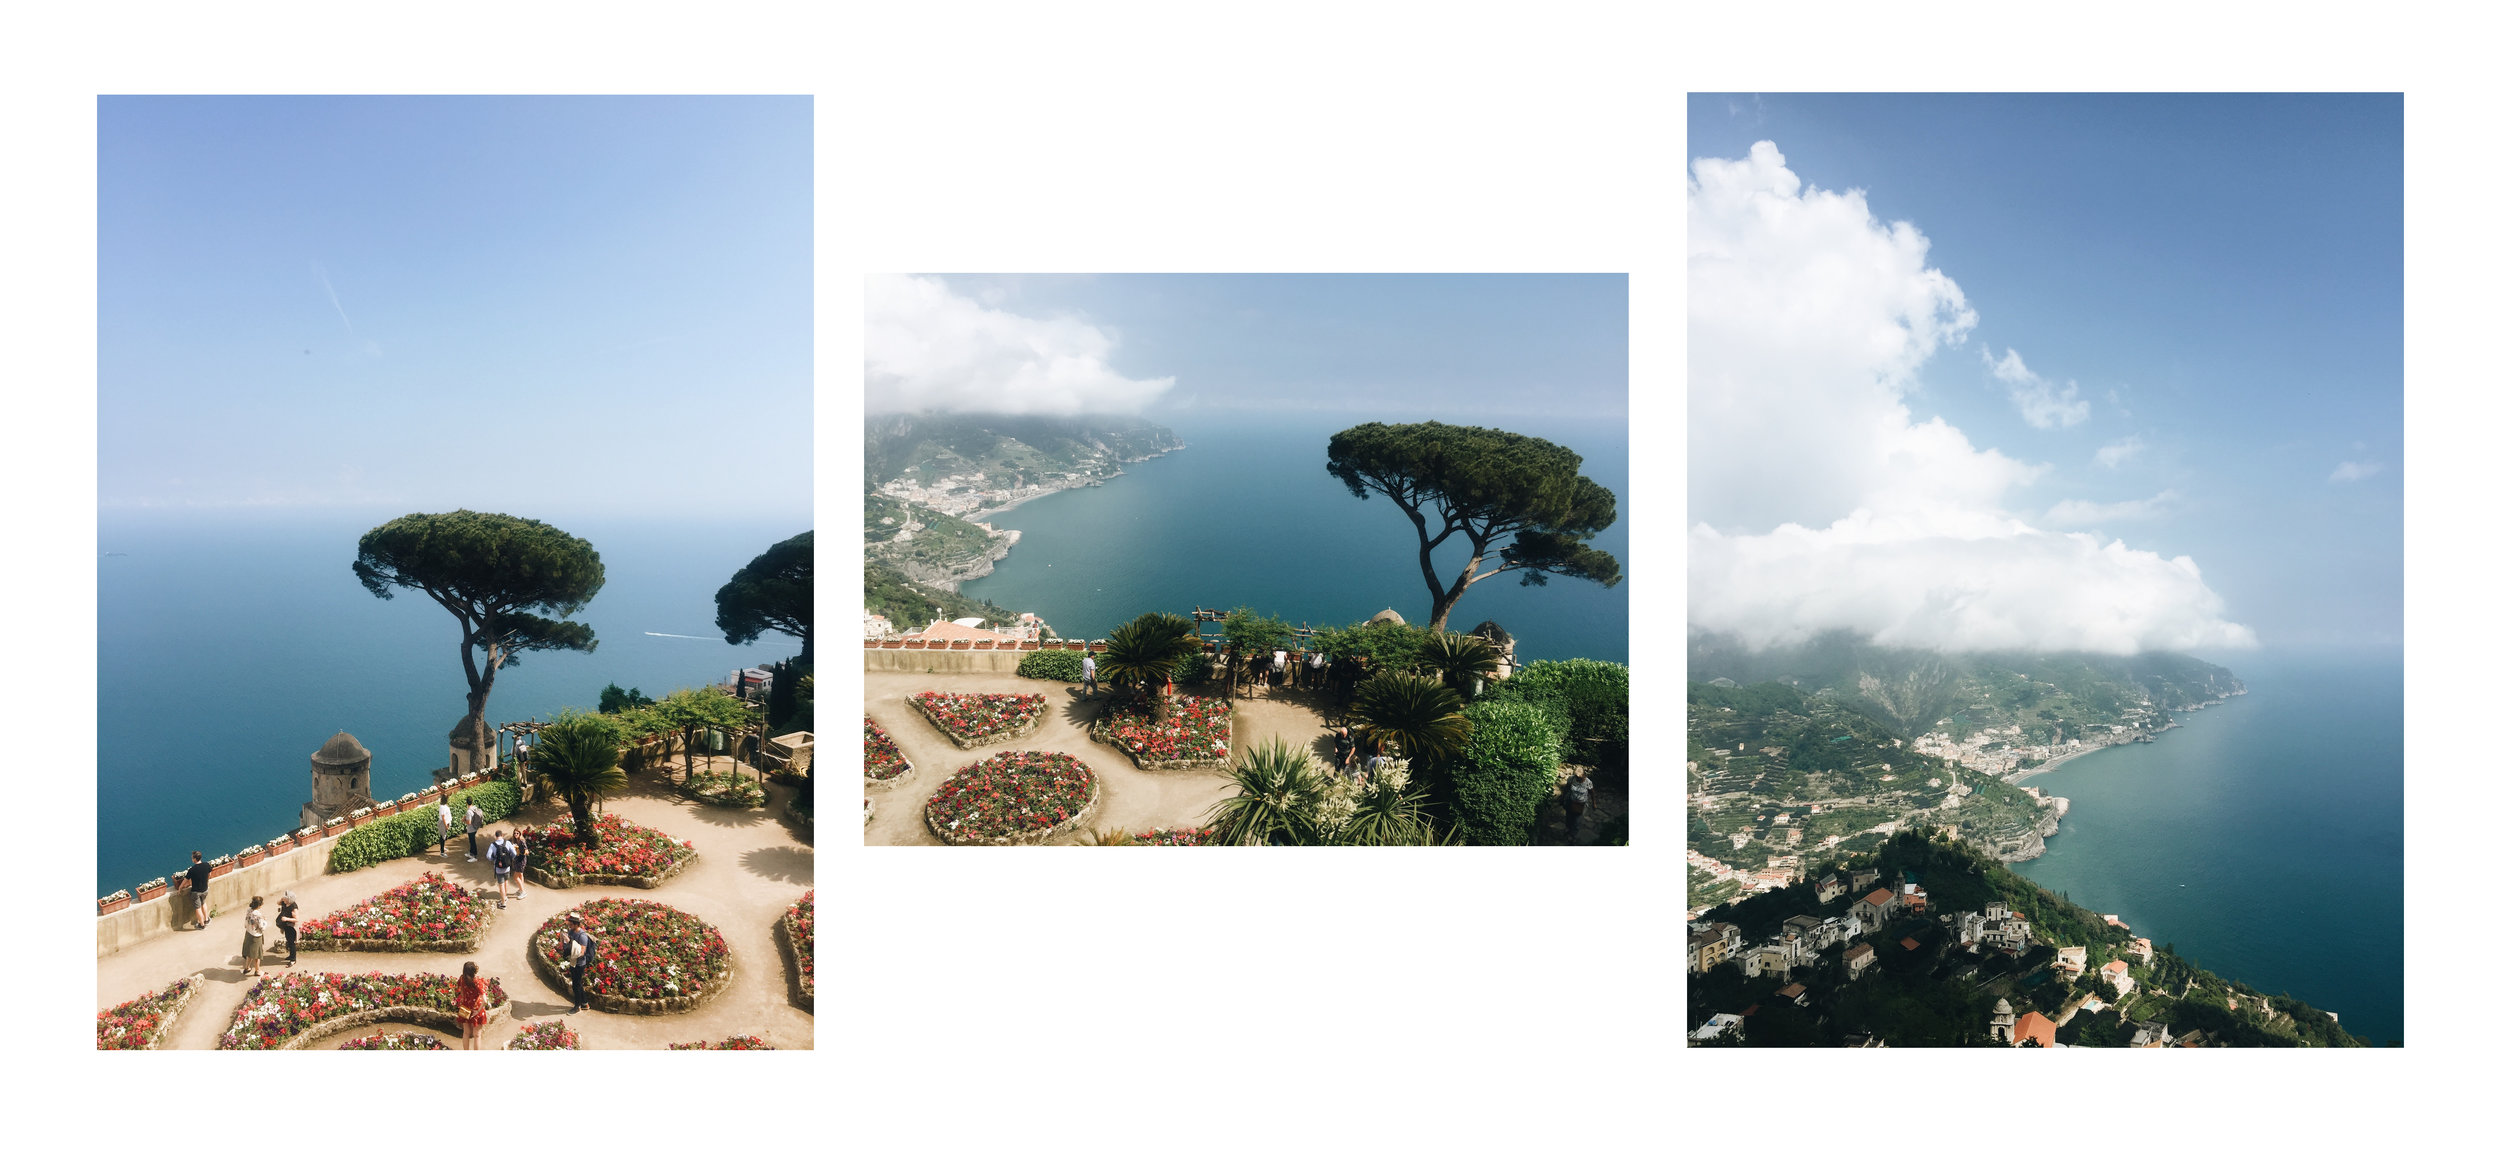 ravello-cote-amalfitaine-italie-voyage-onmyway.JPG